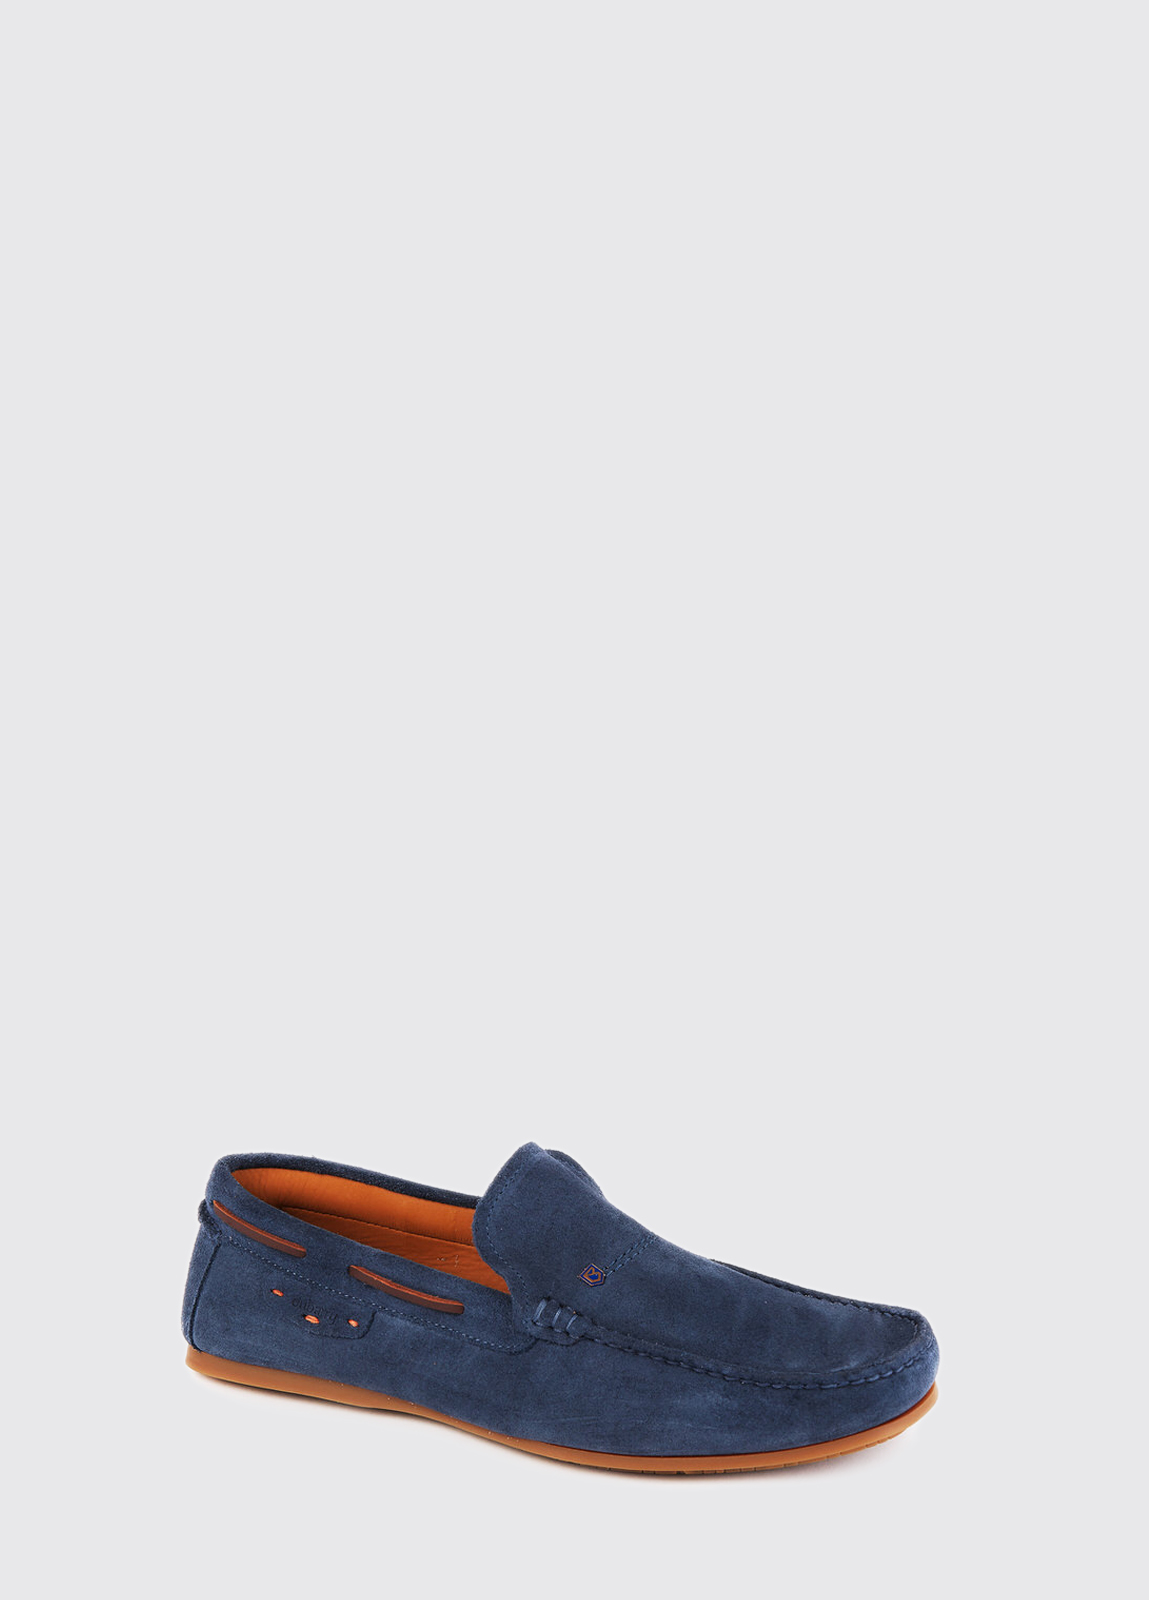 Tobago Loafer - Denim